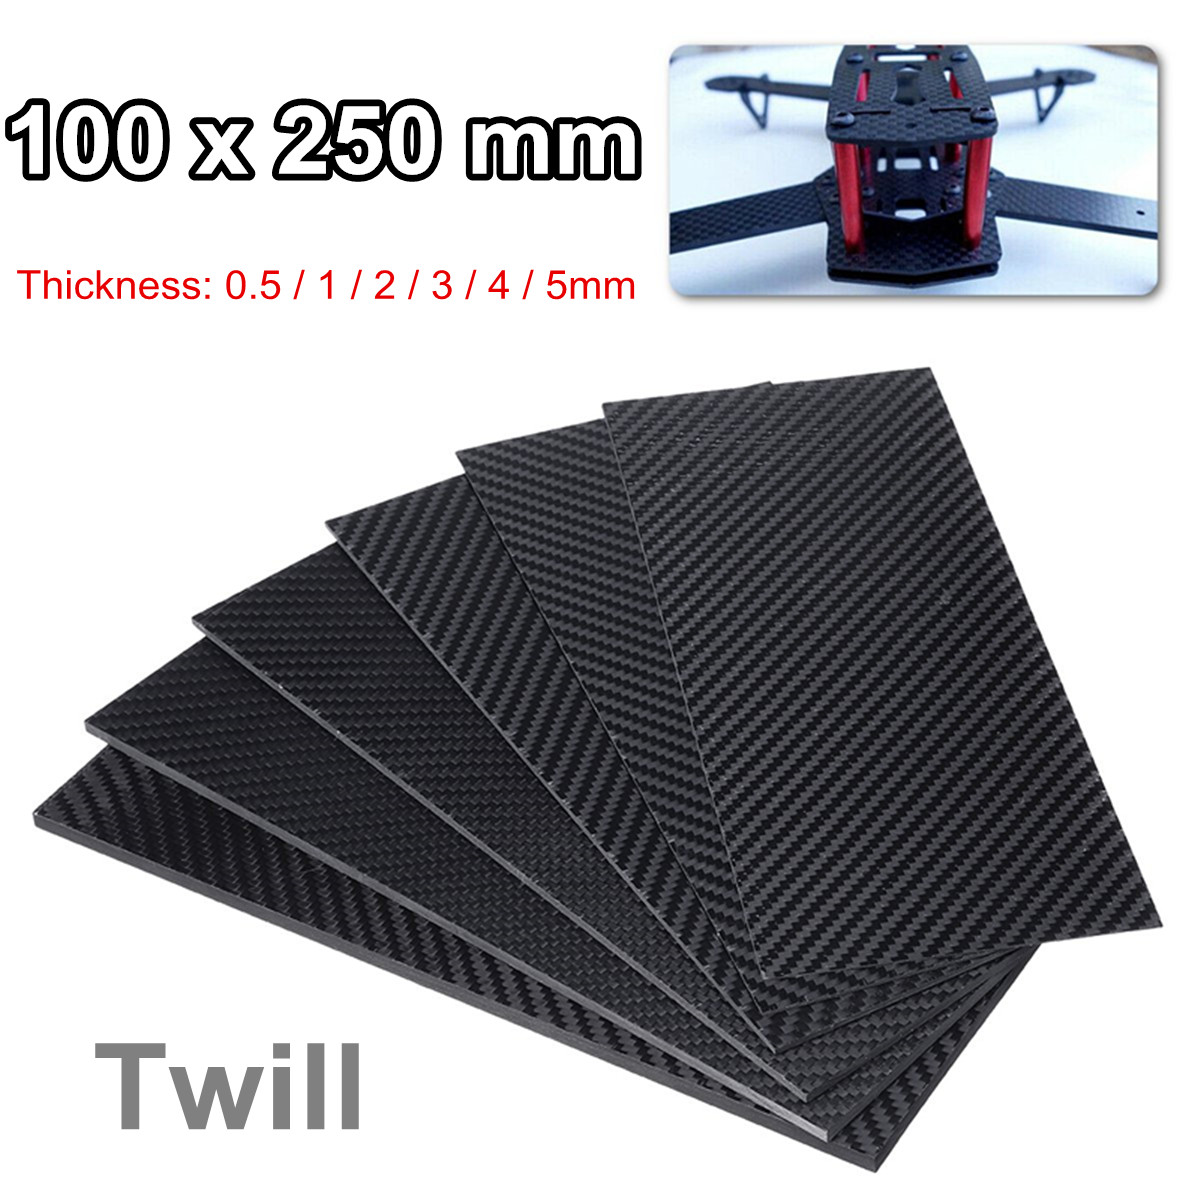 100X250 Mm 0.5-5MM 3K Matte Surface Twill Carbon Plate Panel Sheets High Composite Hardness Material Anti-UV Carbon Fiber Board